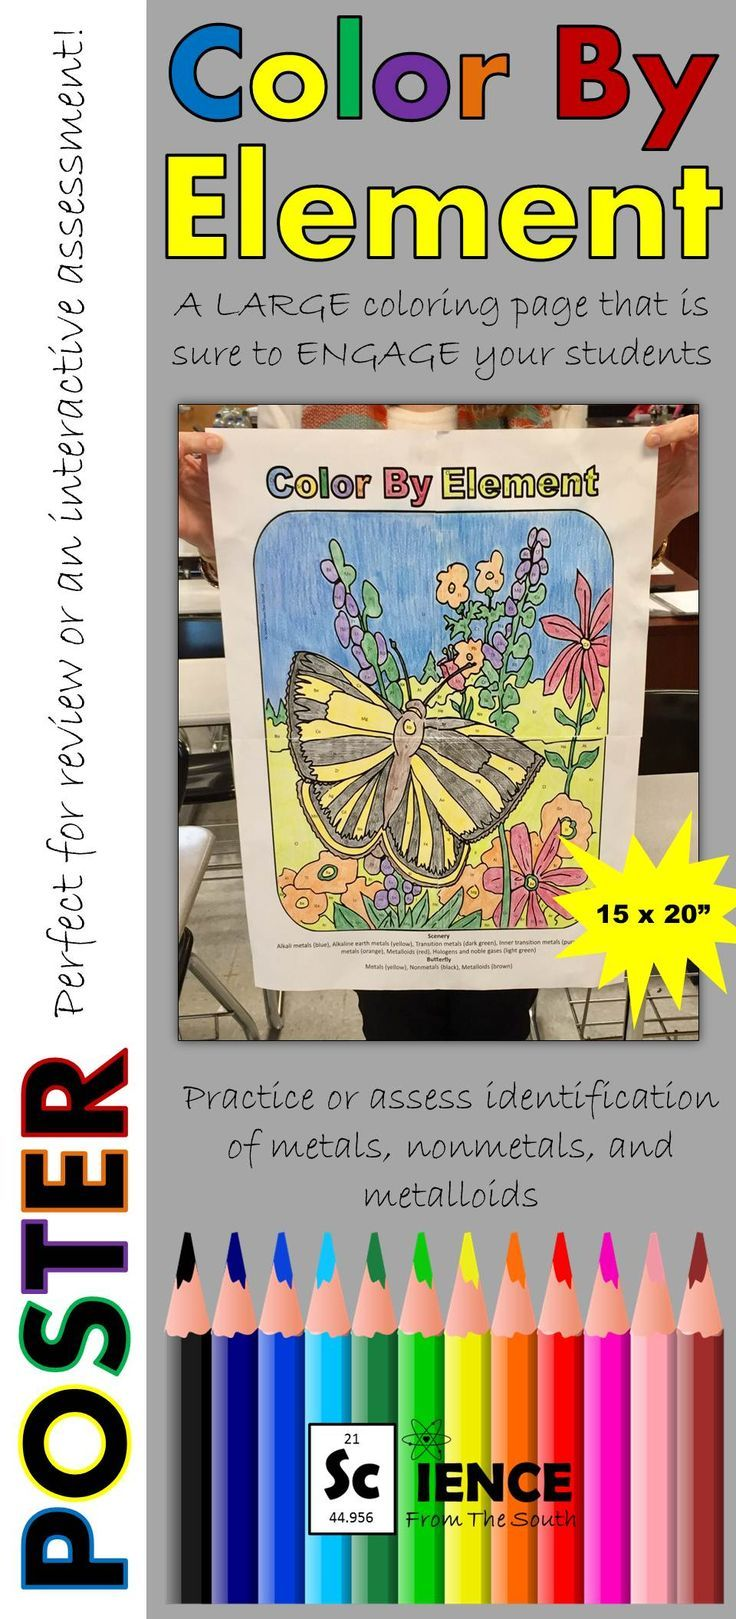 Color by element poster for review or assessment of metal nonmetal color by element poster for review or assessment of metal nonmetal and metalloid elementary sciencemiddle school sciencenoble gasperiodic tableteaching gamestrikefo Images